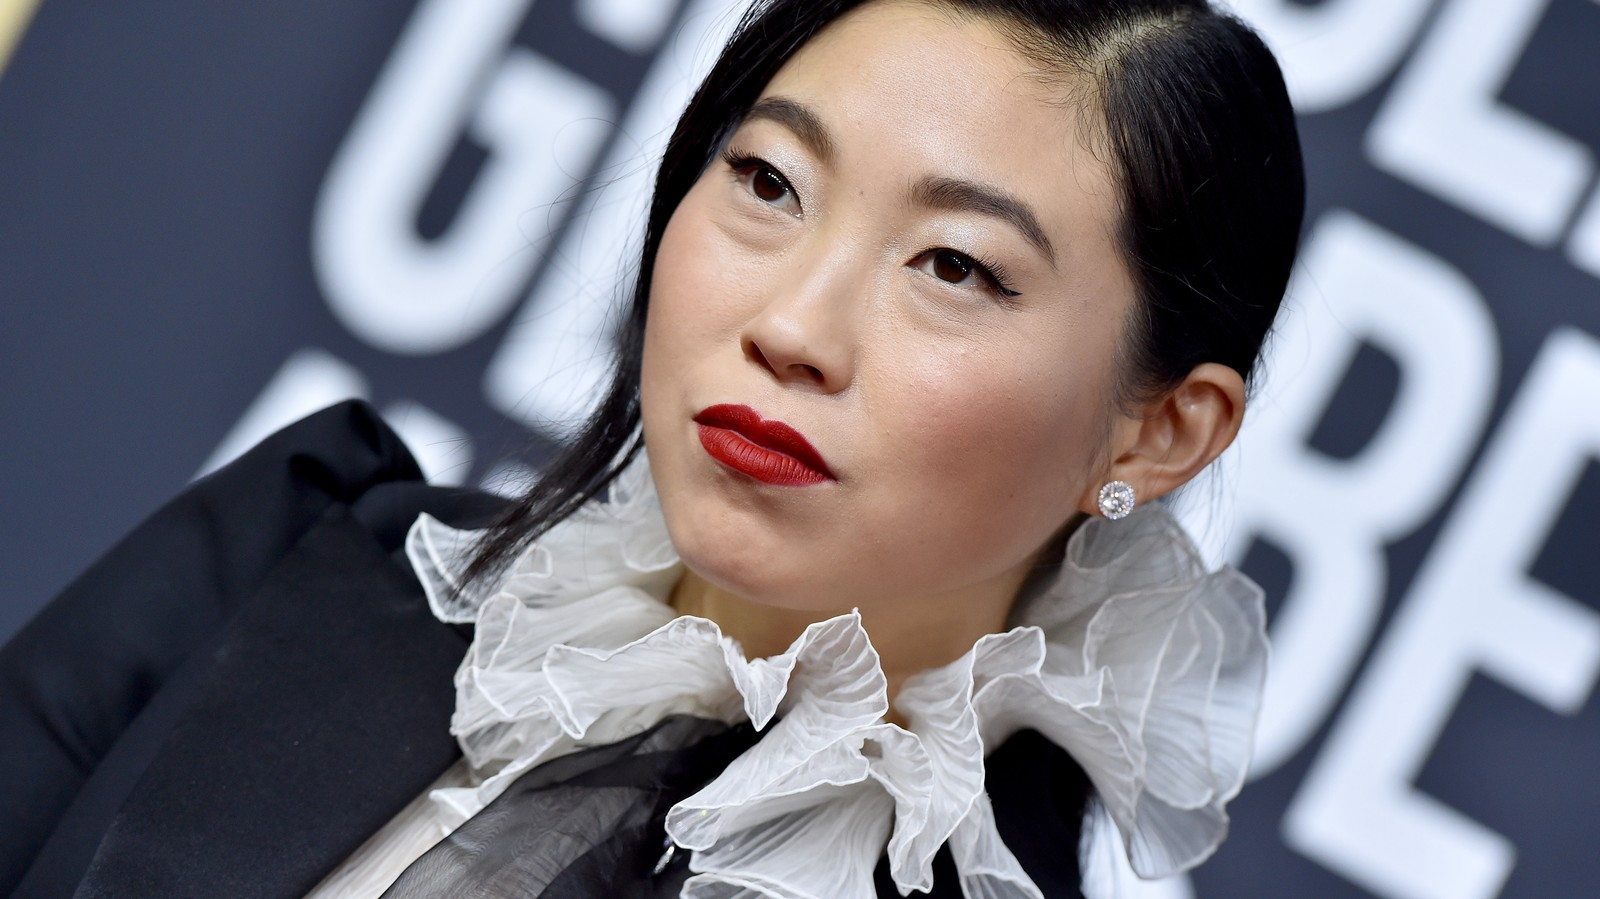 Awkwafina's Past Makes Her a Complicated Icon of Asian American Representation